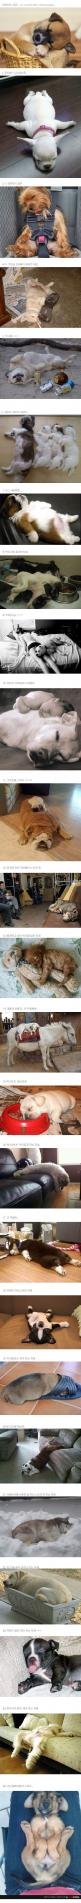 sleepy puppies :D: Sleeping Dogs, Dogs Lie, Sleepy Puppies, Sleeping Pups, Sleepy Pups, Puppy, So Funny, Sleeping Puppies, Animal